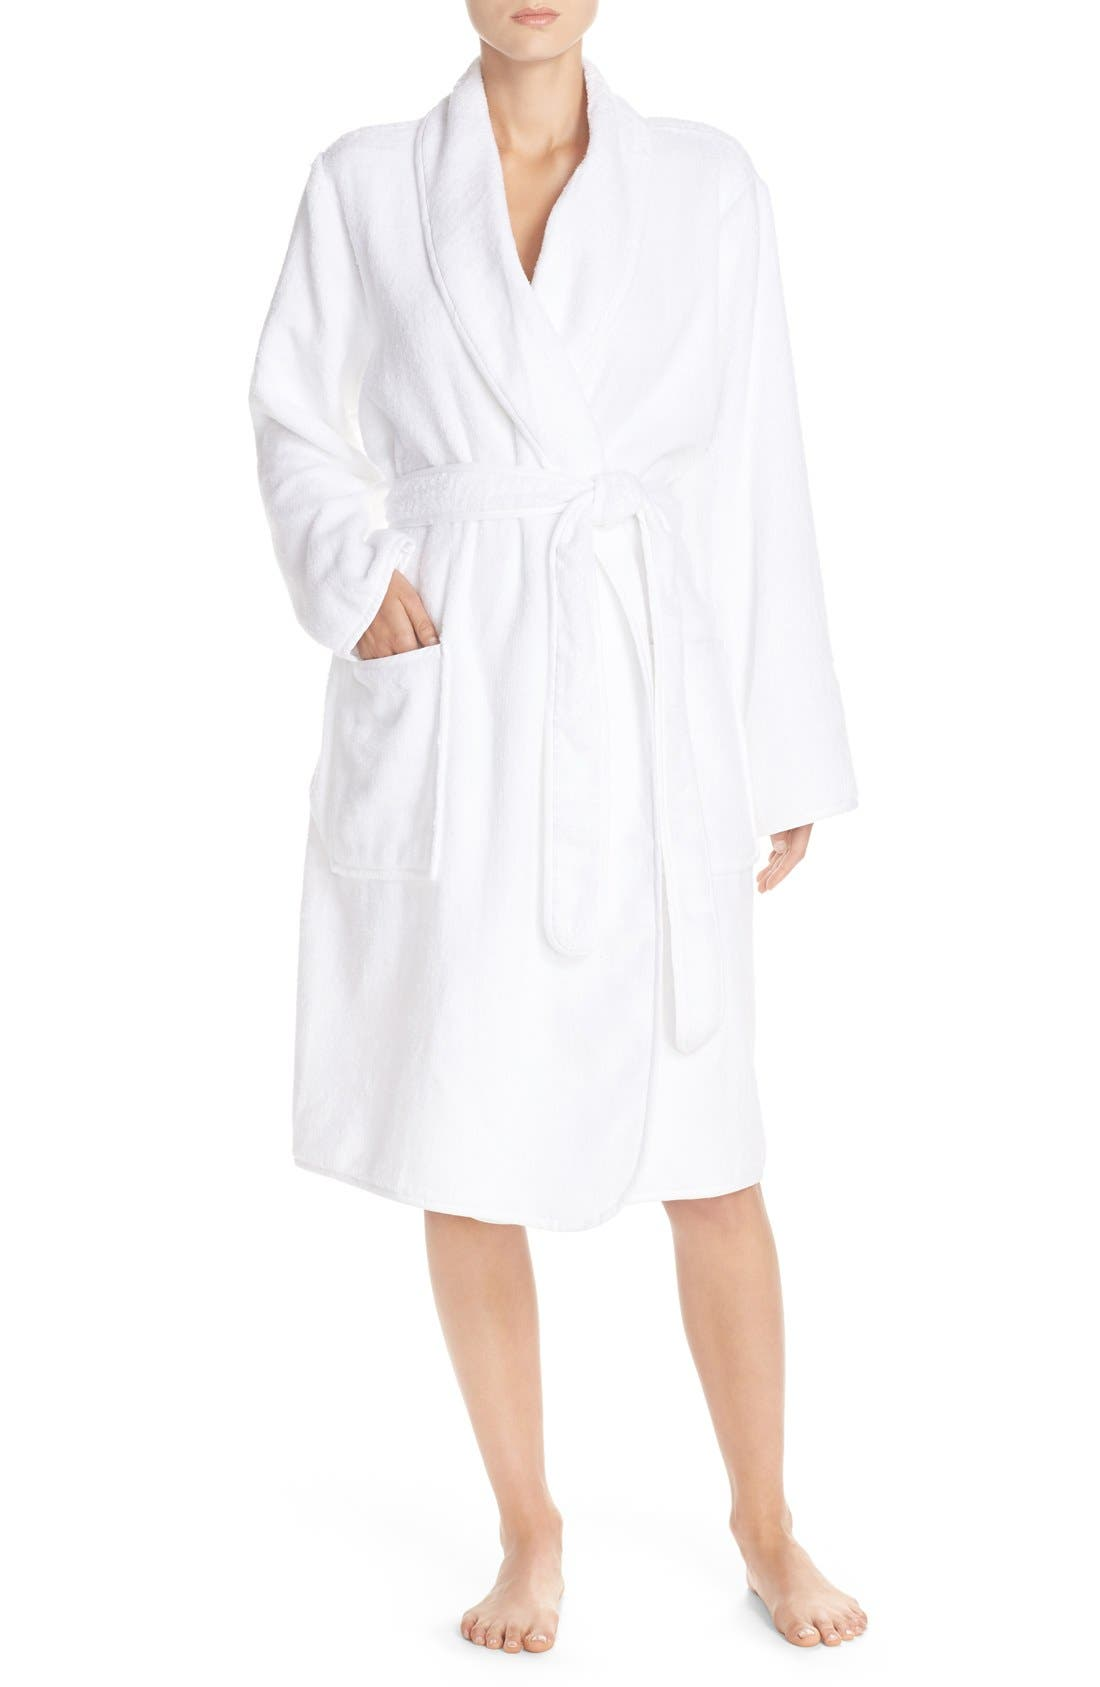 Main Image - Naked Terry Cotton Robe